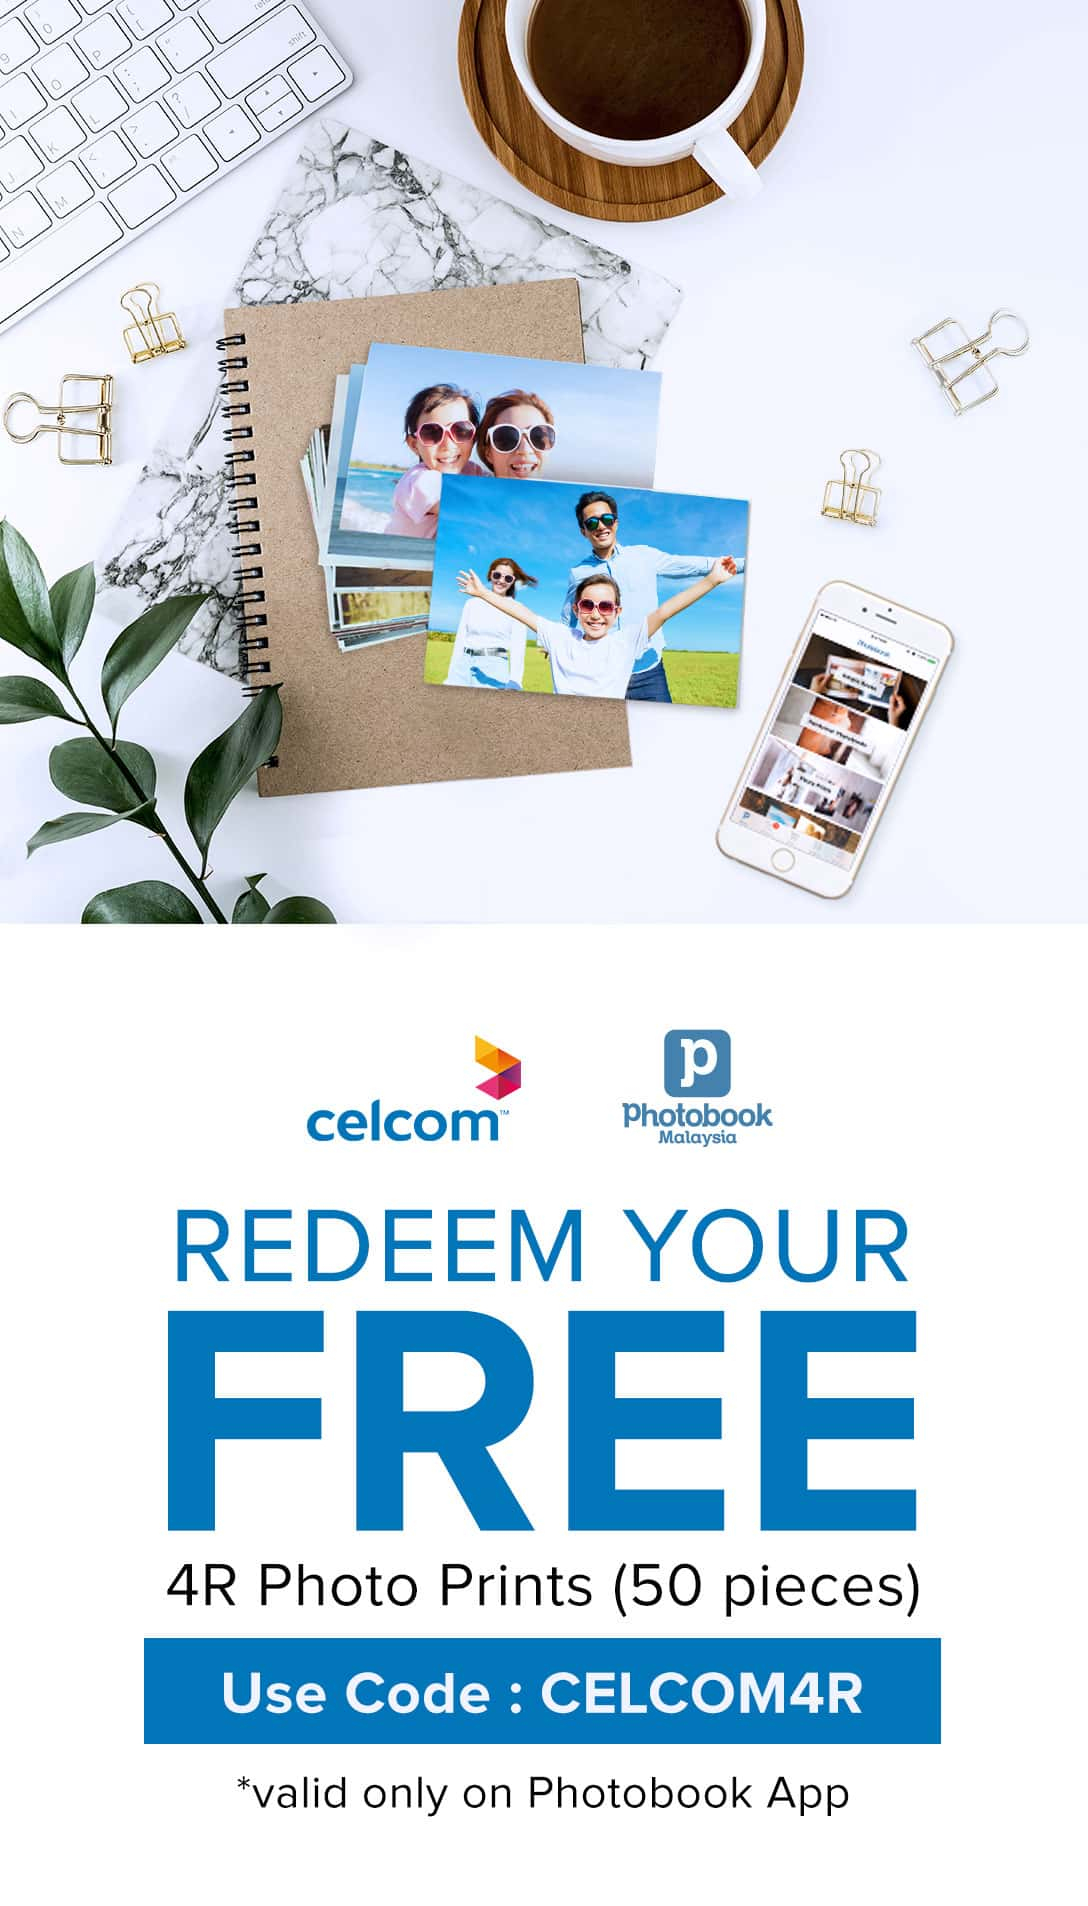 Exclusive Celcom Special Offer - Puzzle Print Voucher Code